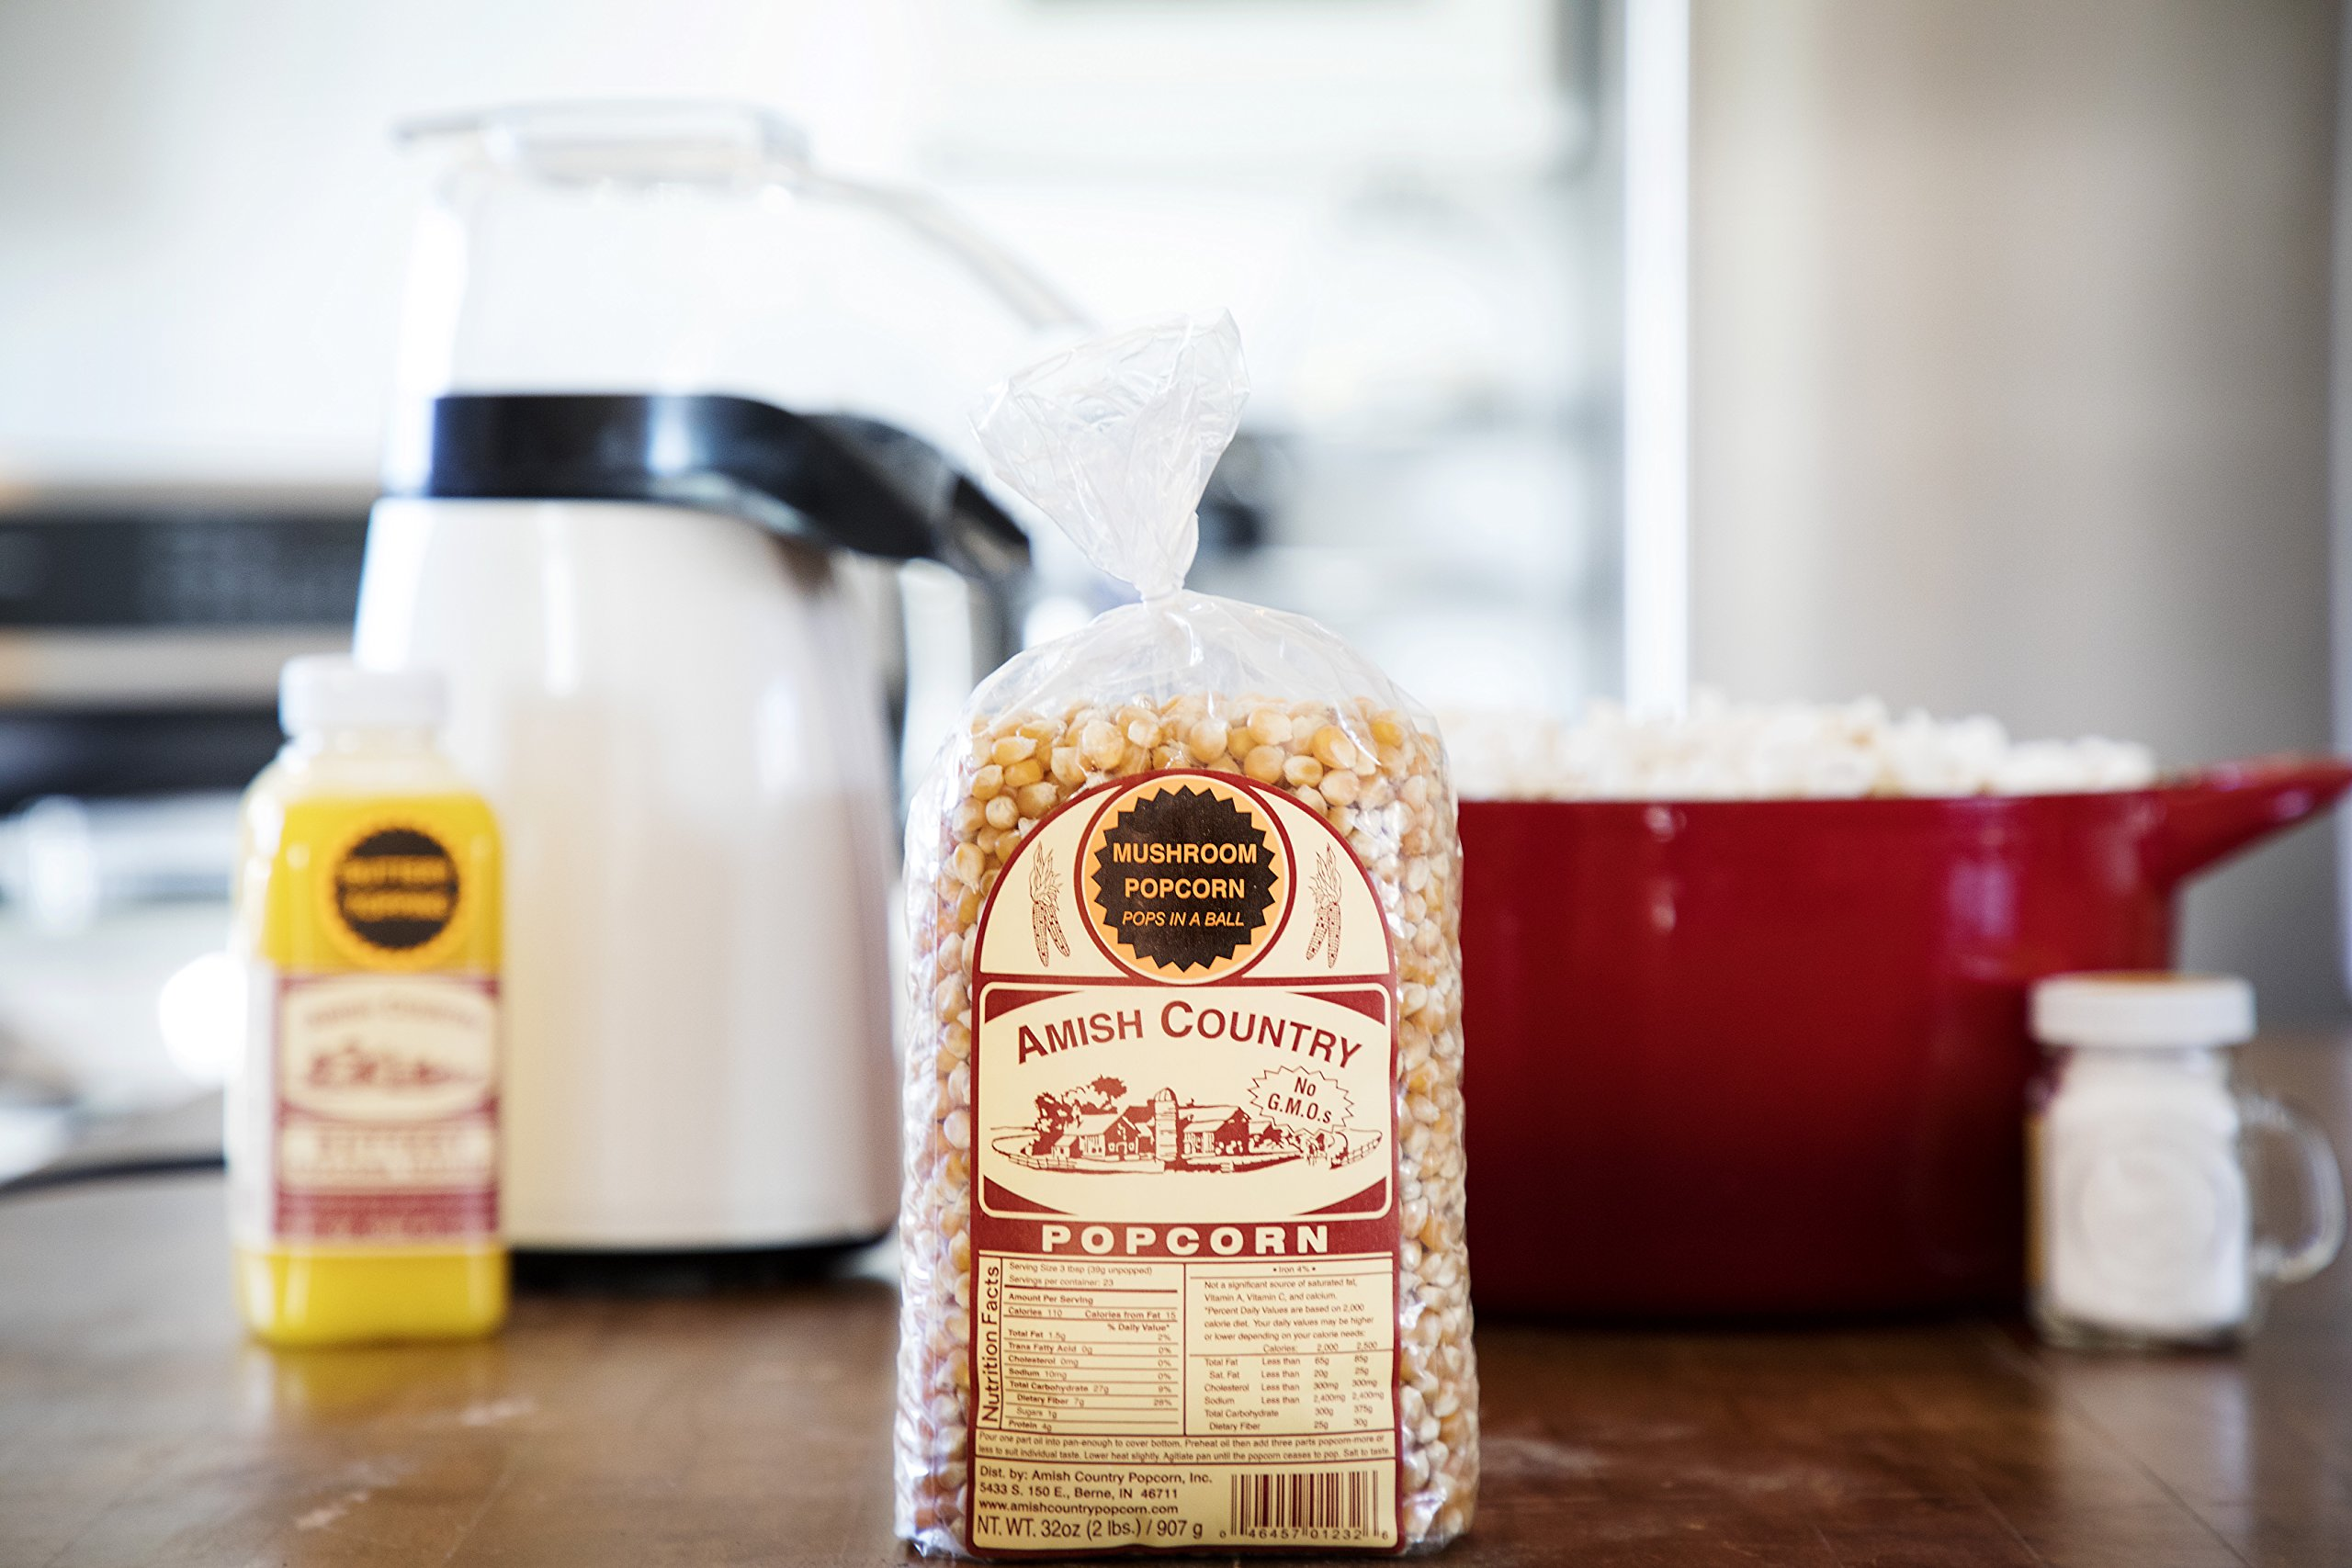 Amish Country Popcorn - Mushroom Popcorn (2 Pound Bag) With Recipe Guide - Old Fashioned, Non GMO, Gluten Free, Microwaveable, Stovetop and Air Popper Friendly by Amish Country Popcorn (Image #4)